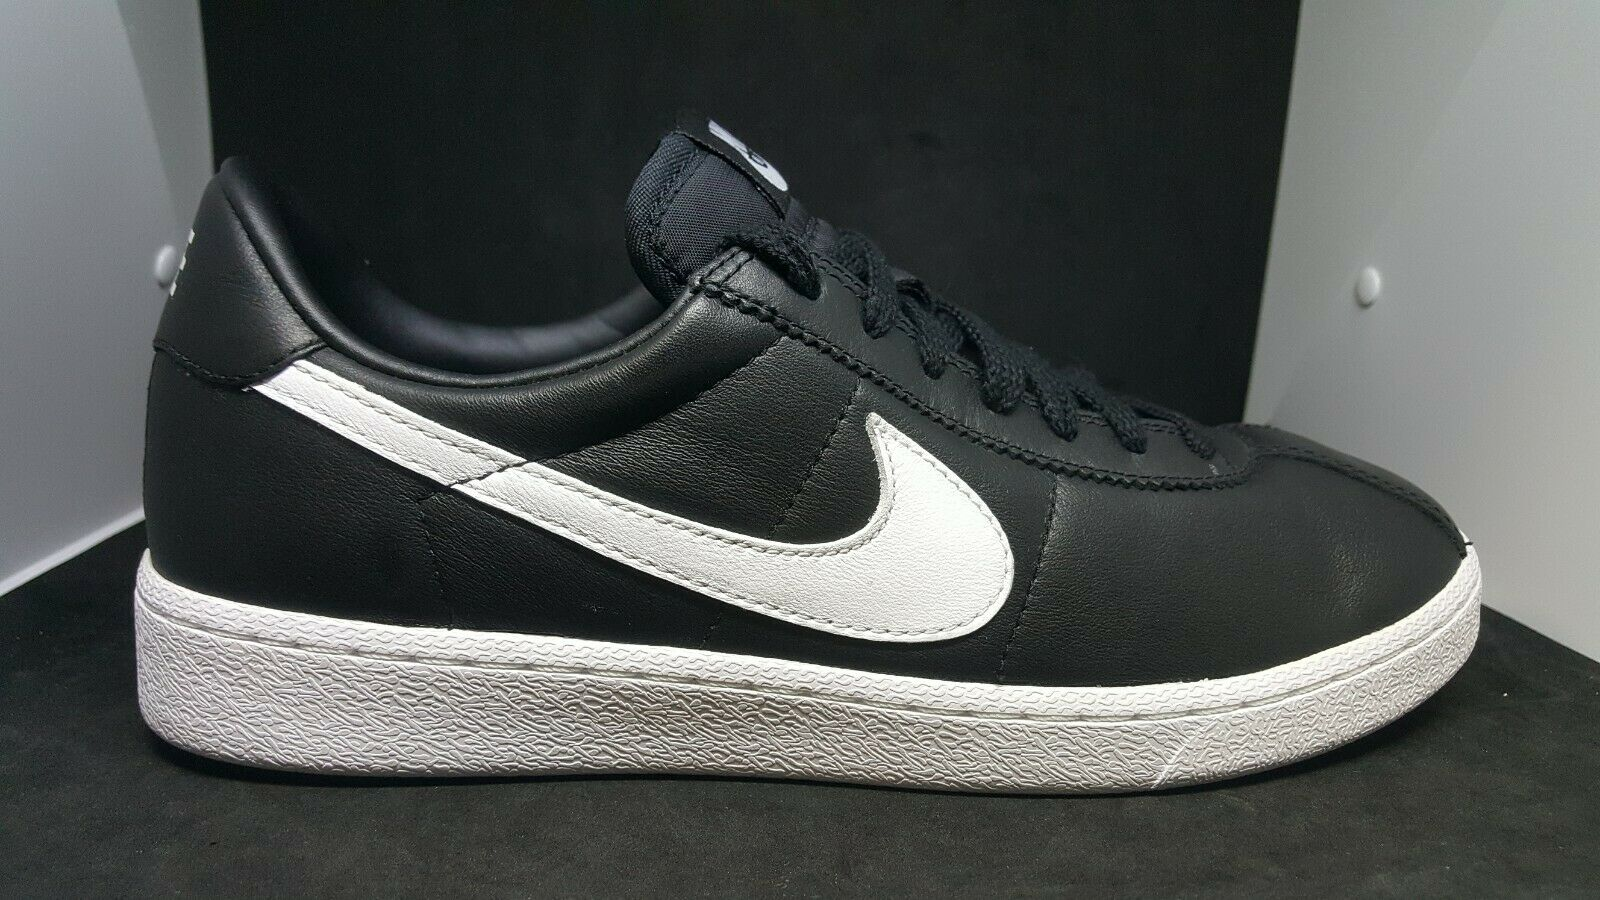 Nike Bruin QS 842956-001 Black White 70's Classic Retro Leather Mens size 10